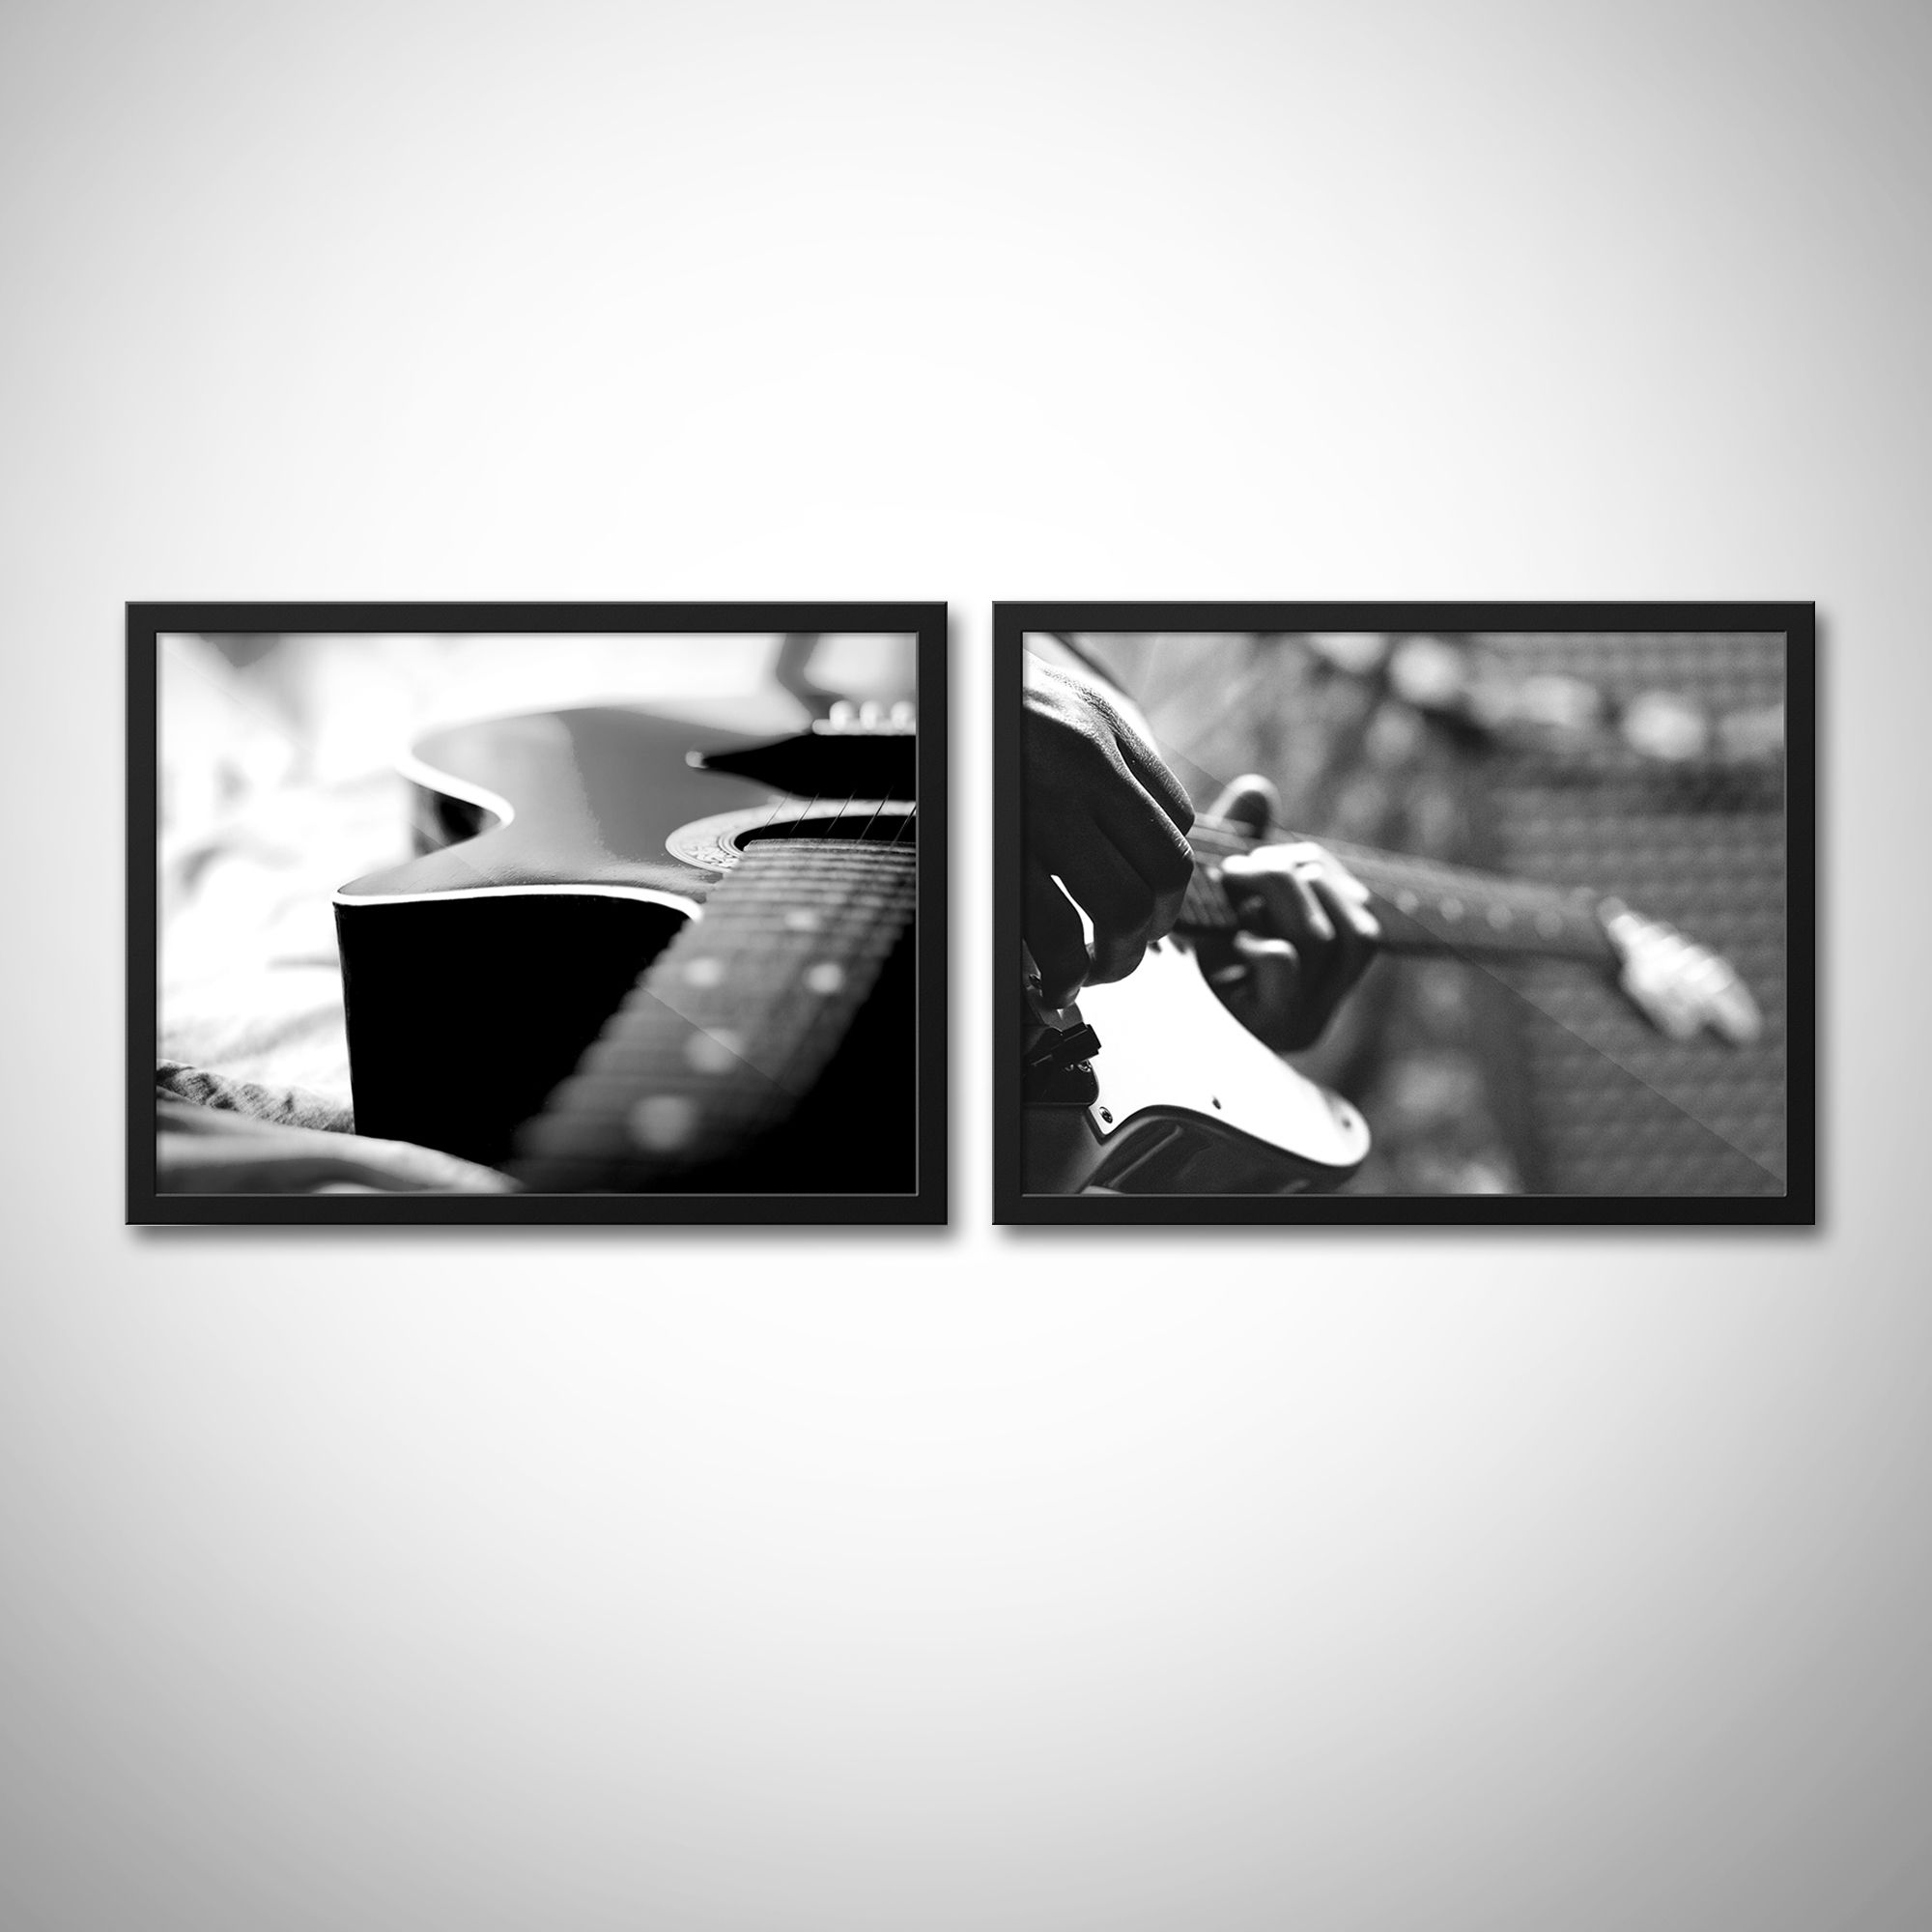 Wall art design. Check out more on our website! #photography #walldecor #aformation #lifestyle #design